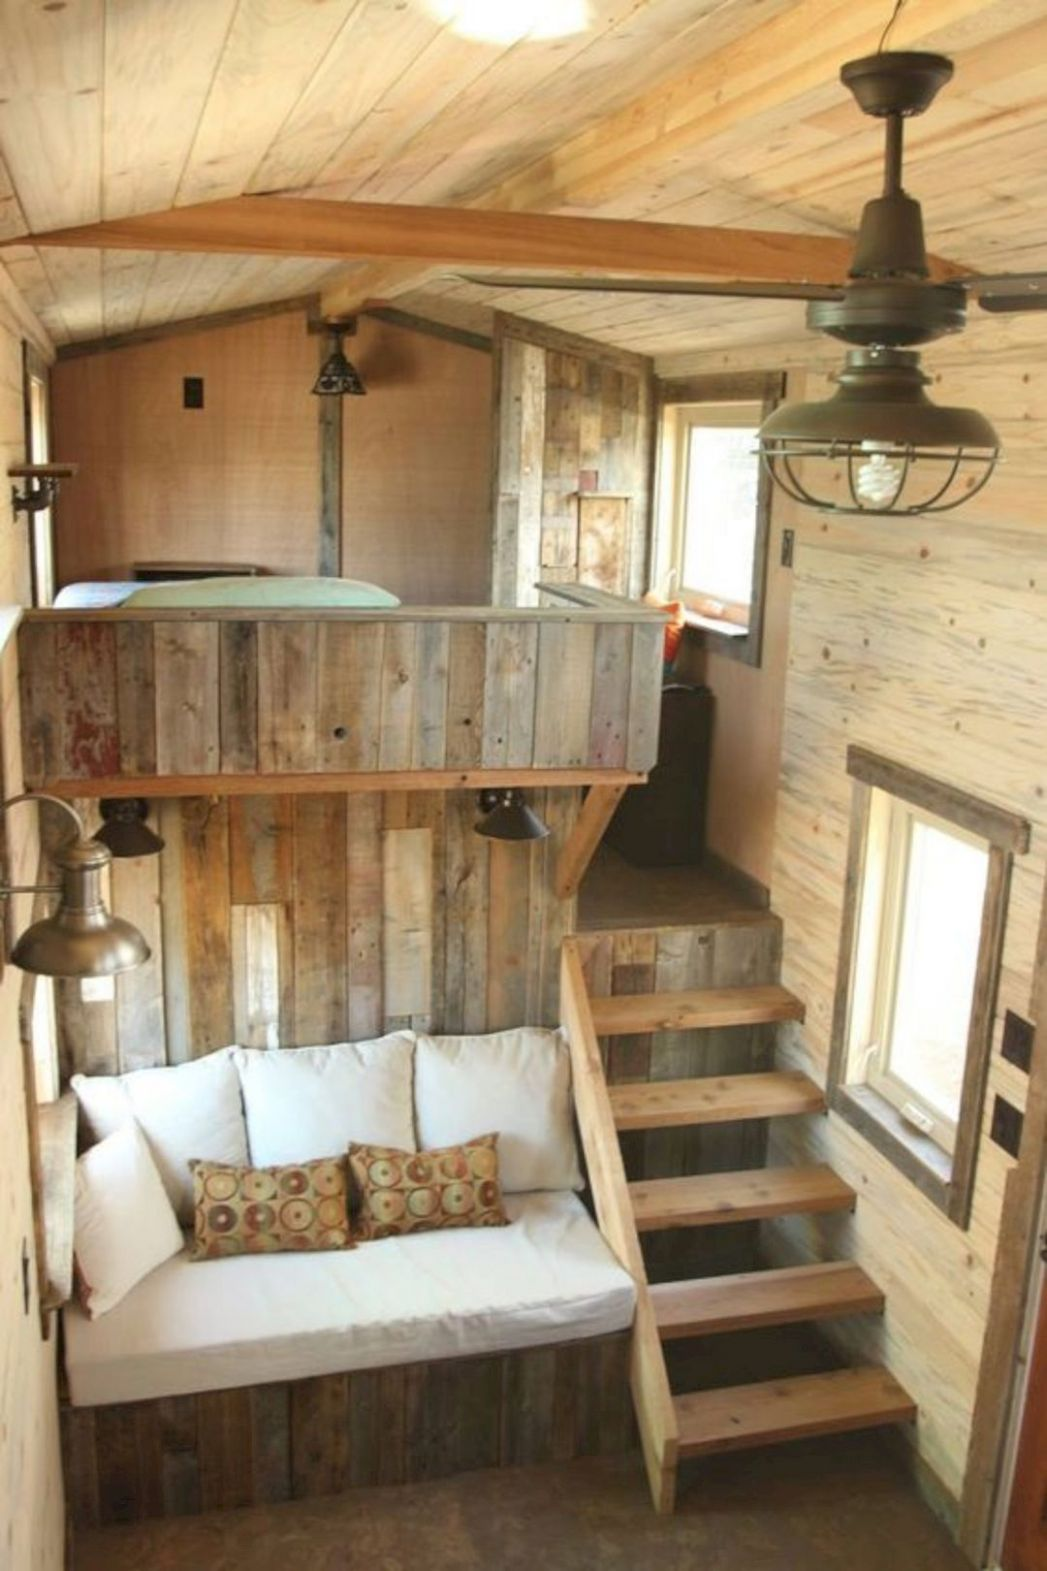 12 Tiny House Interior Design Ideas (With images) | Tiny house ..